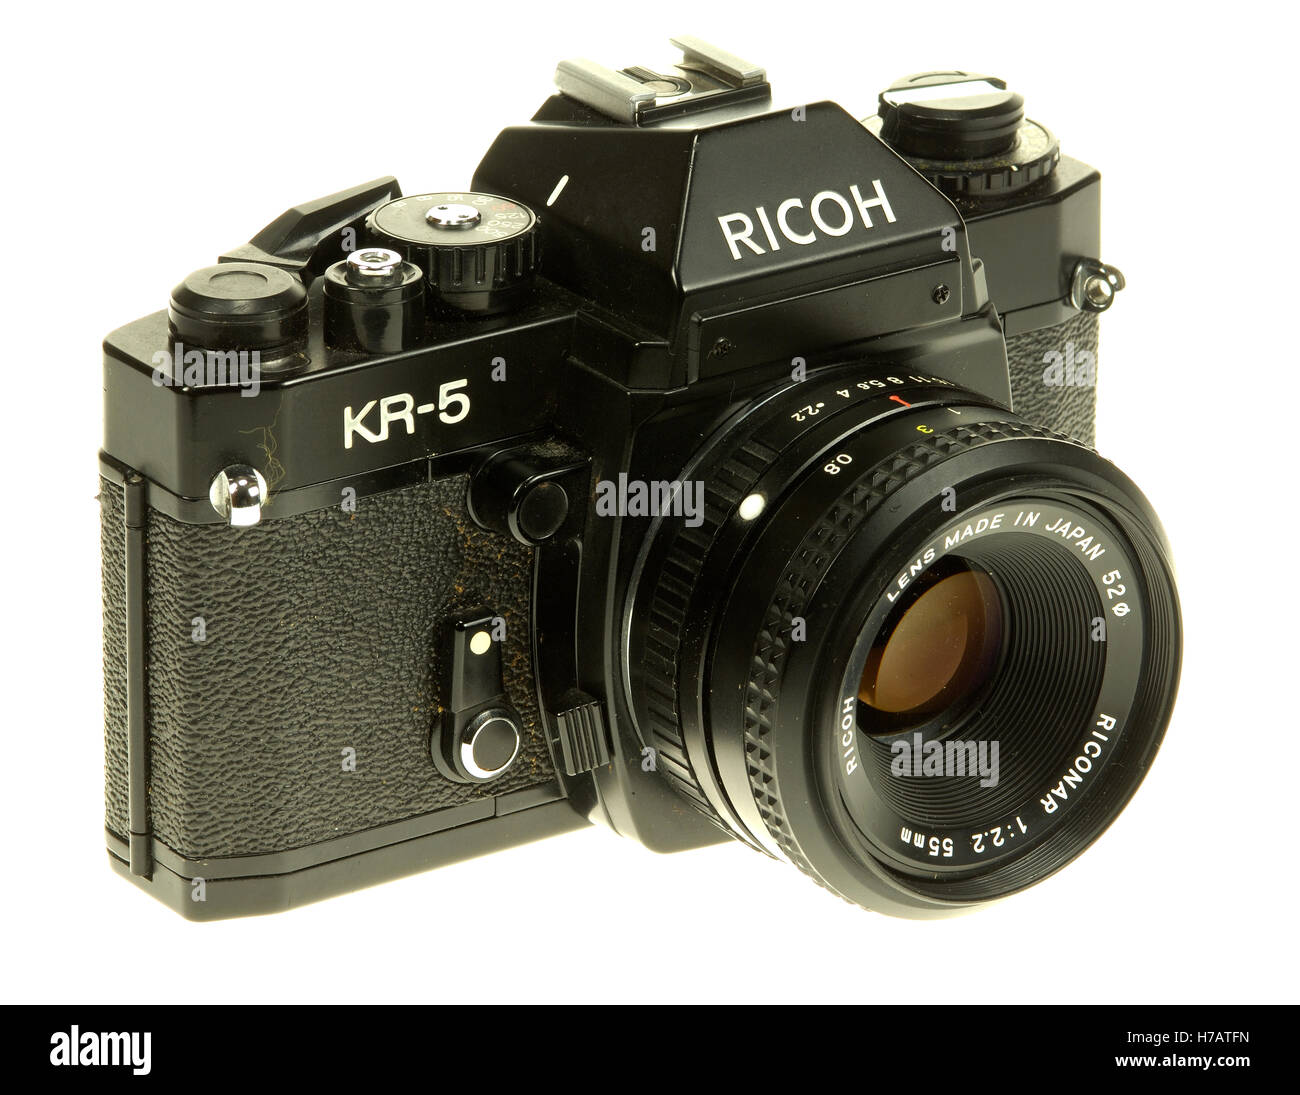 Ricoh KR-5 SLR Camera. - Stock Image